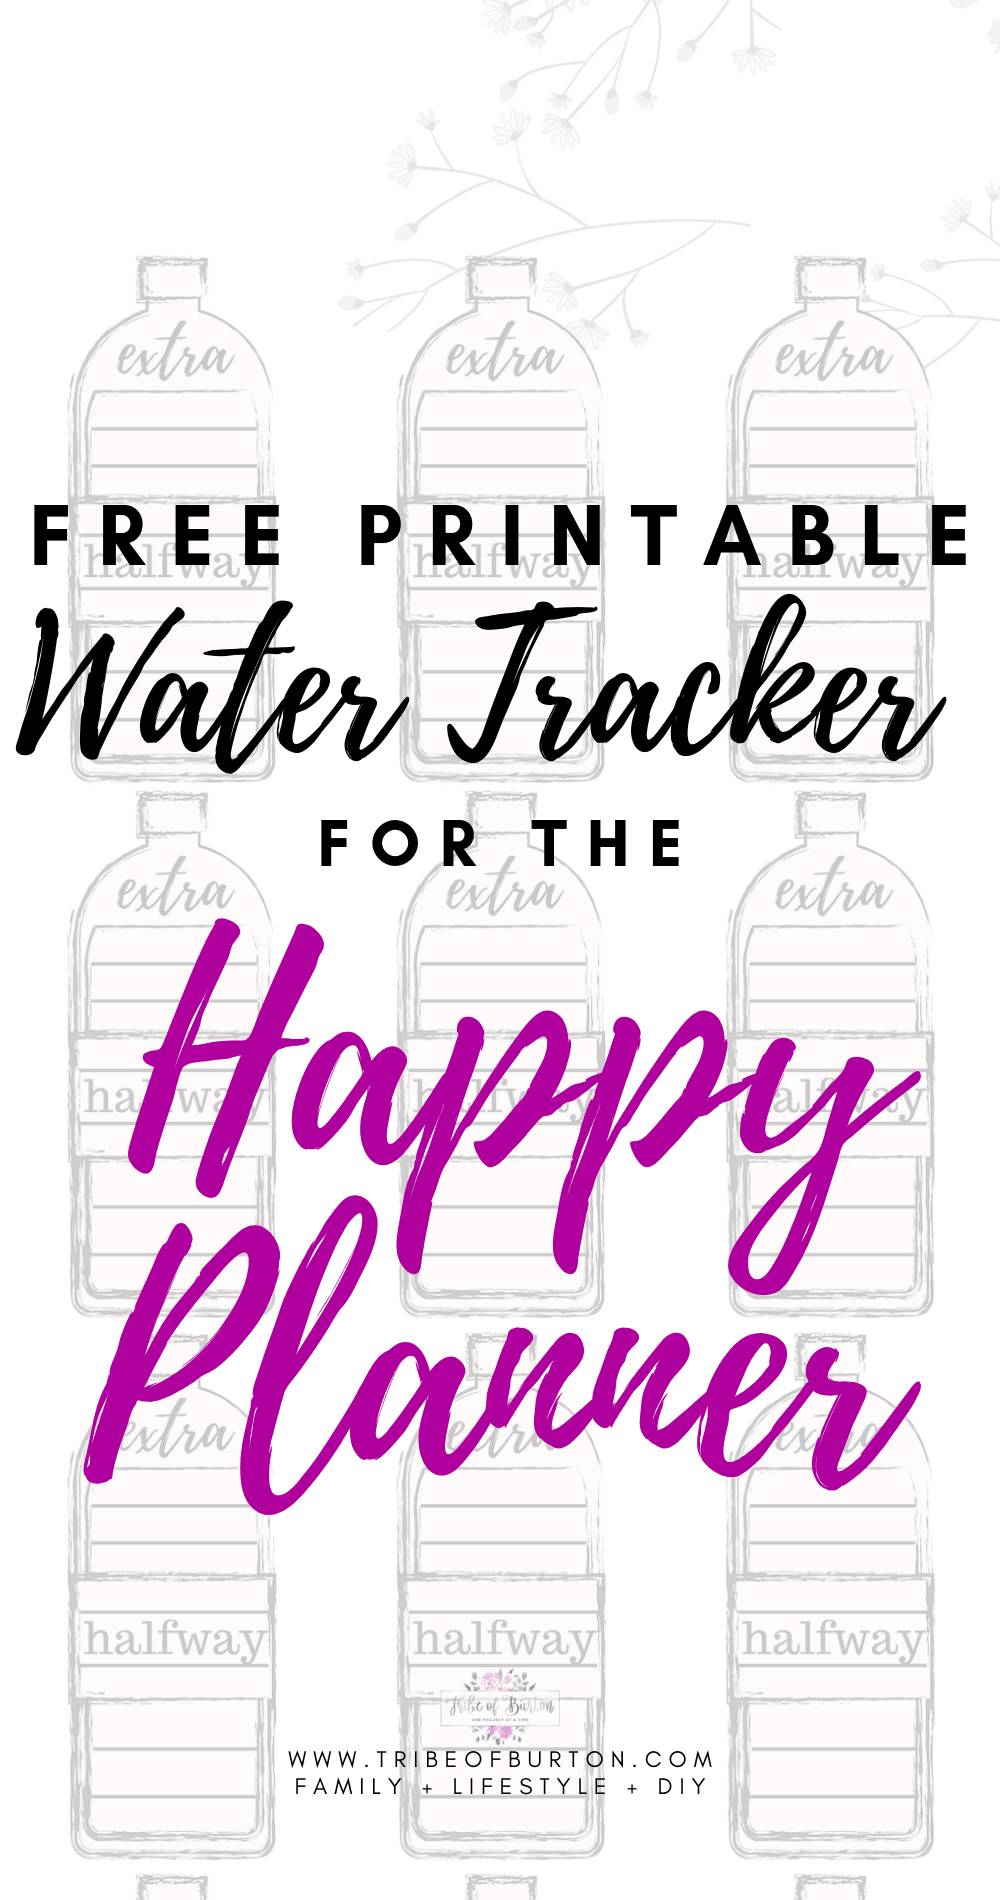 Free printable water tracker for the happy planner.